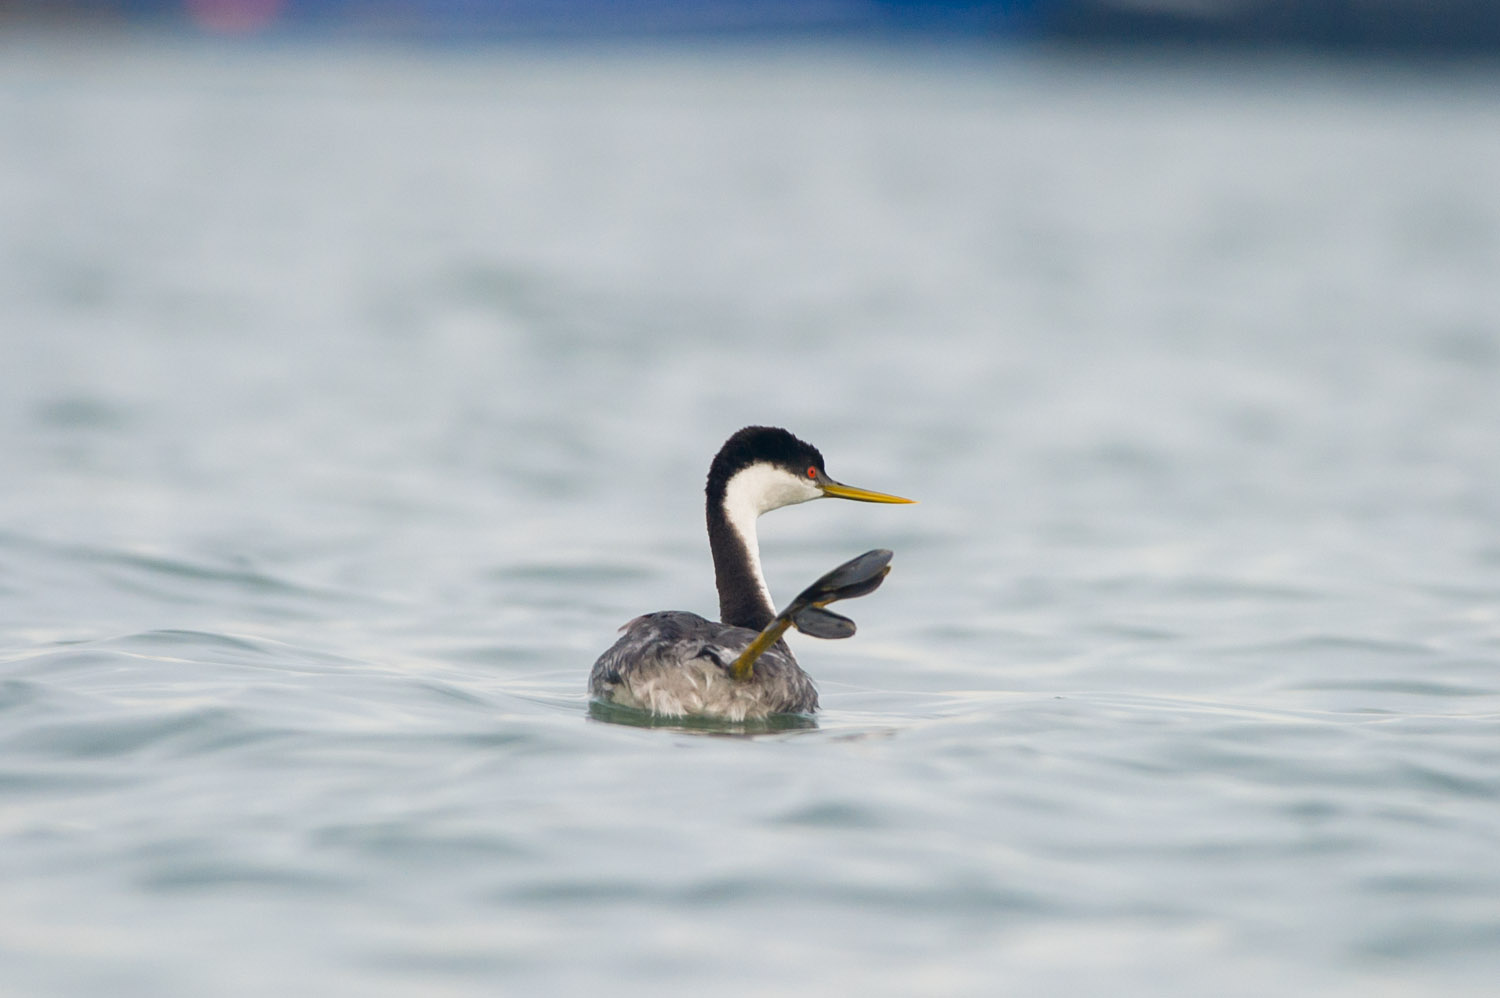 As if to wave goodbye the Grebe waves its goofy foot in the air, it's quite amusing to watch it do this.